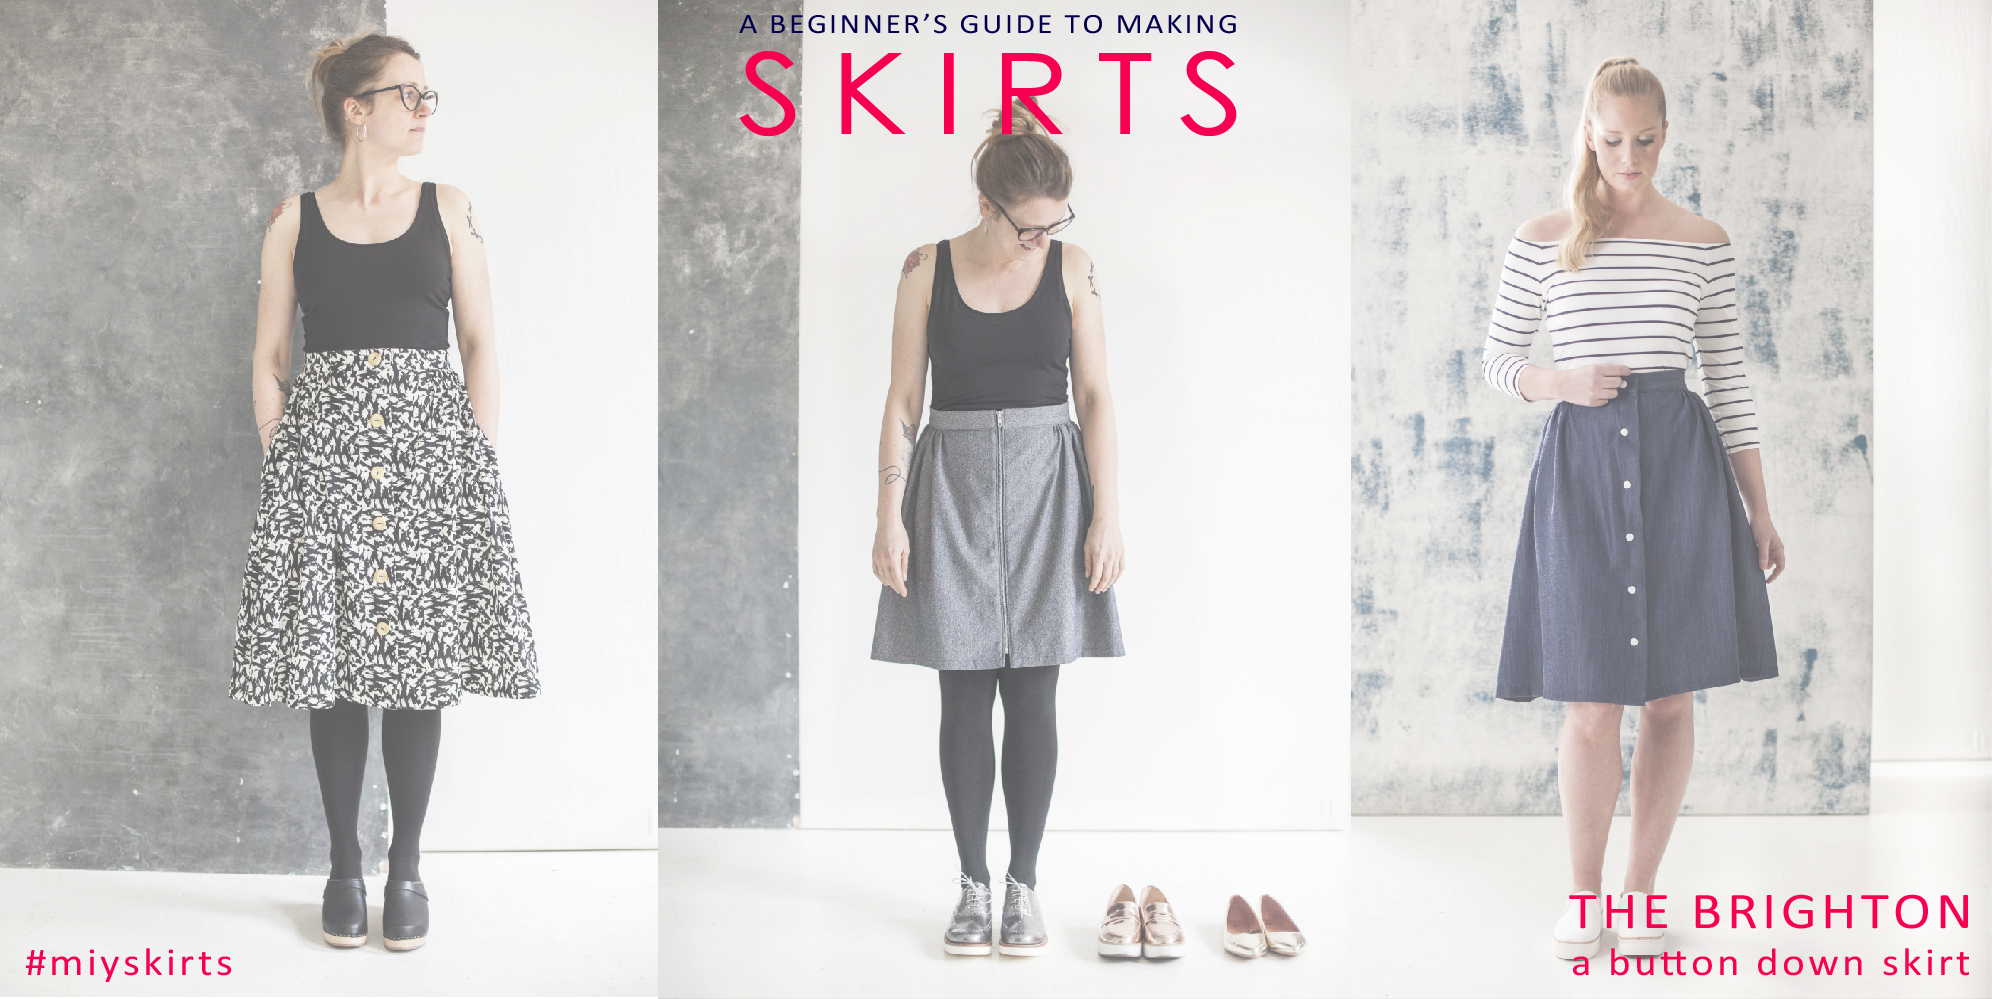 Beginner's Guide to Making Skirts – The Brighton Skirt ...